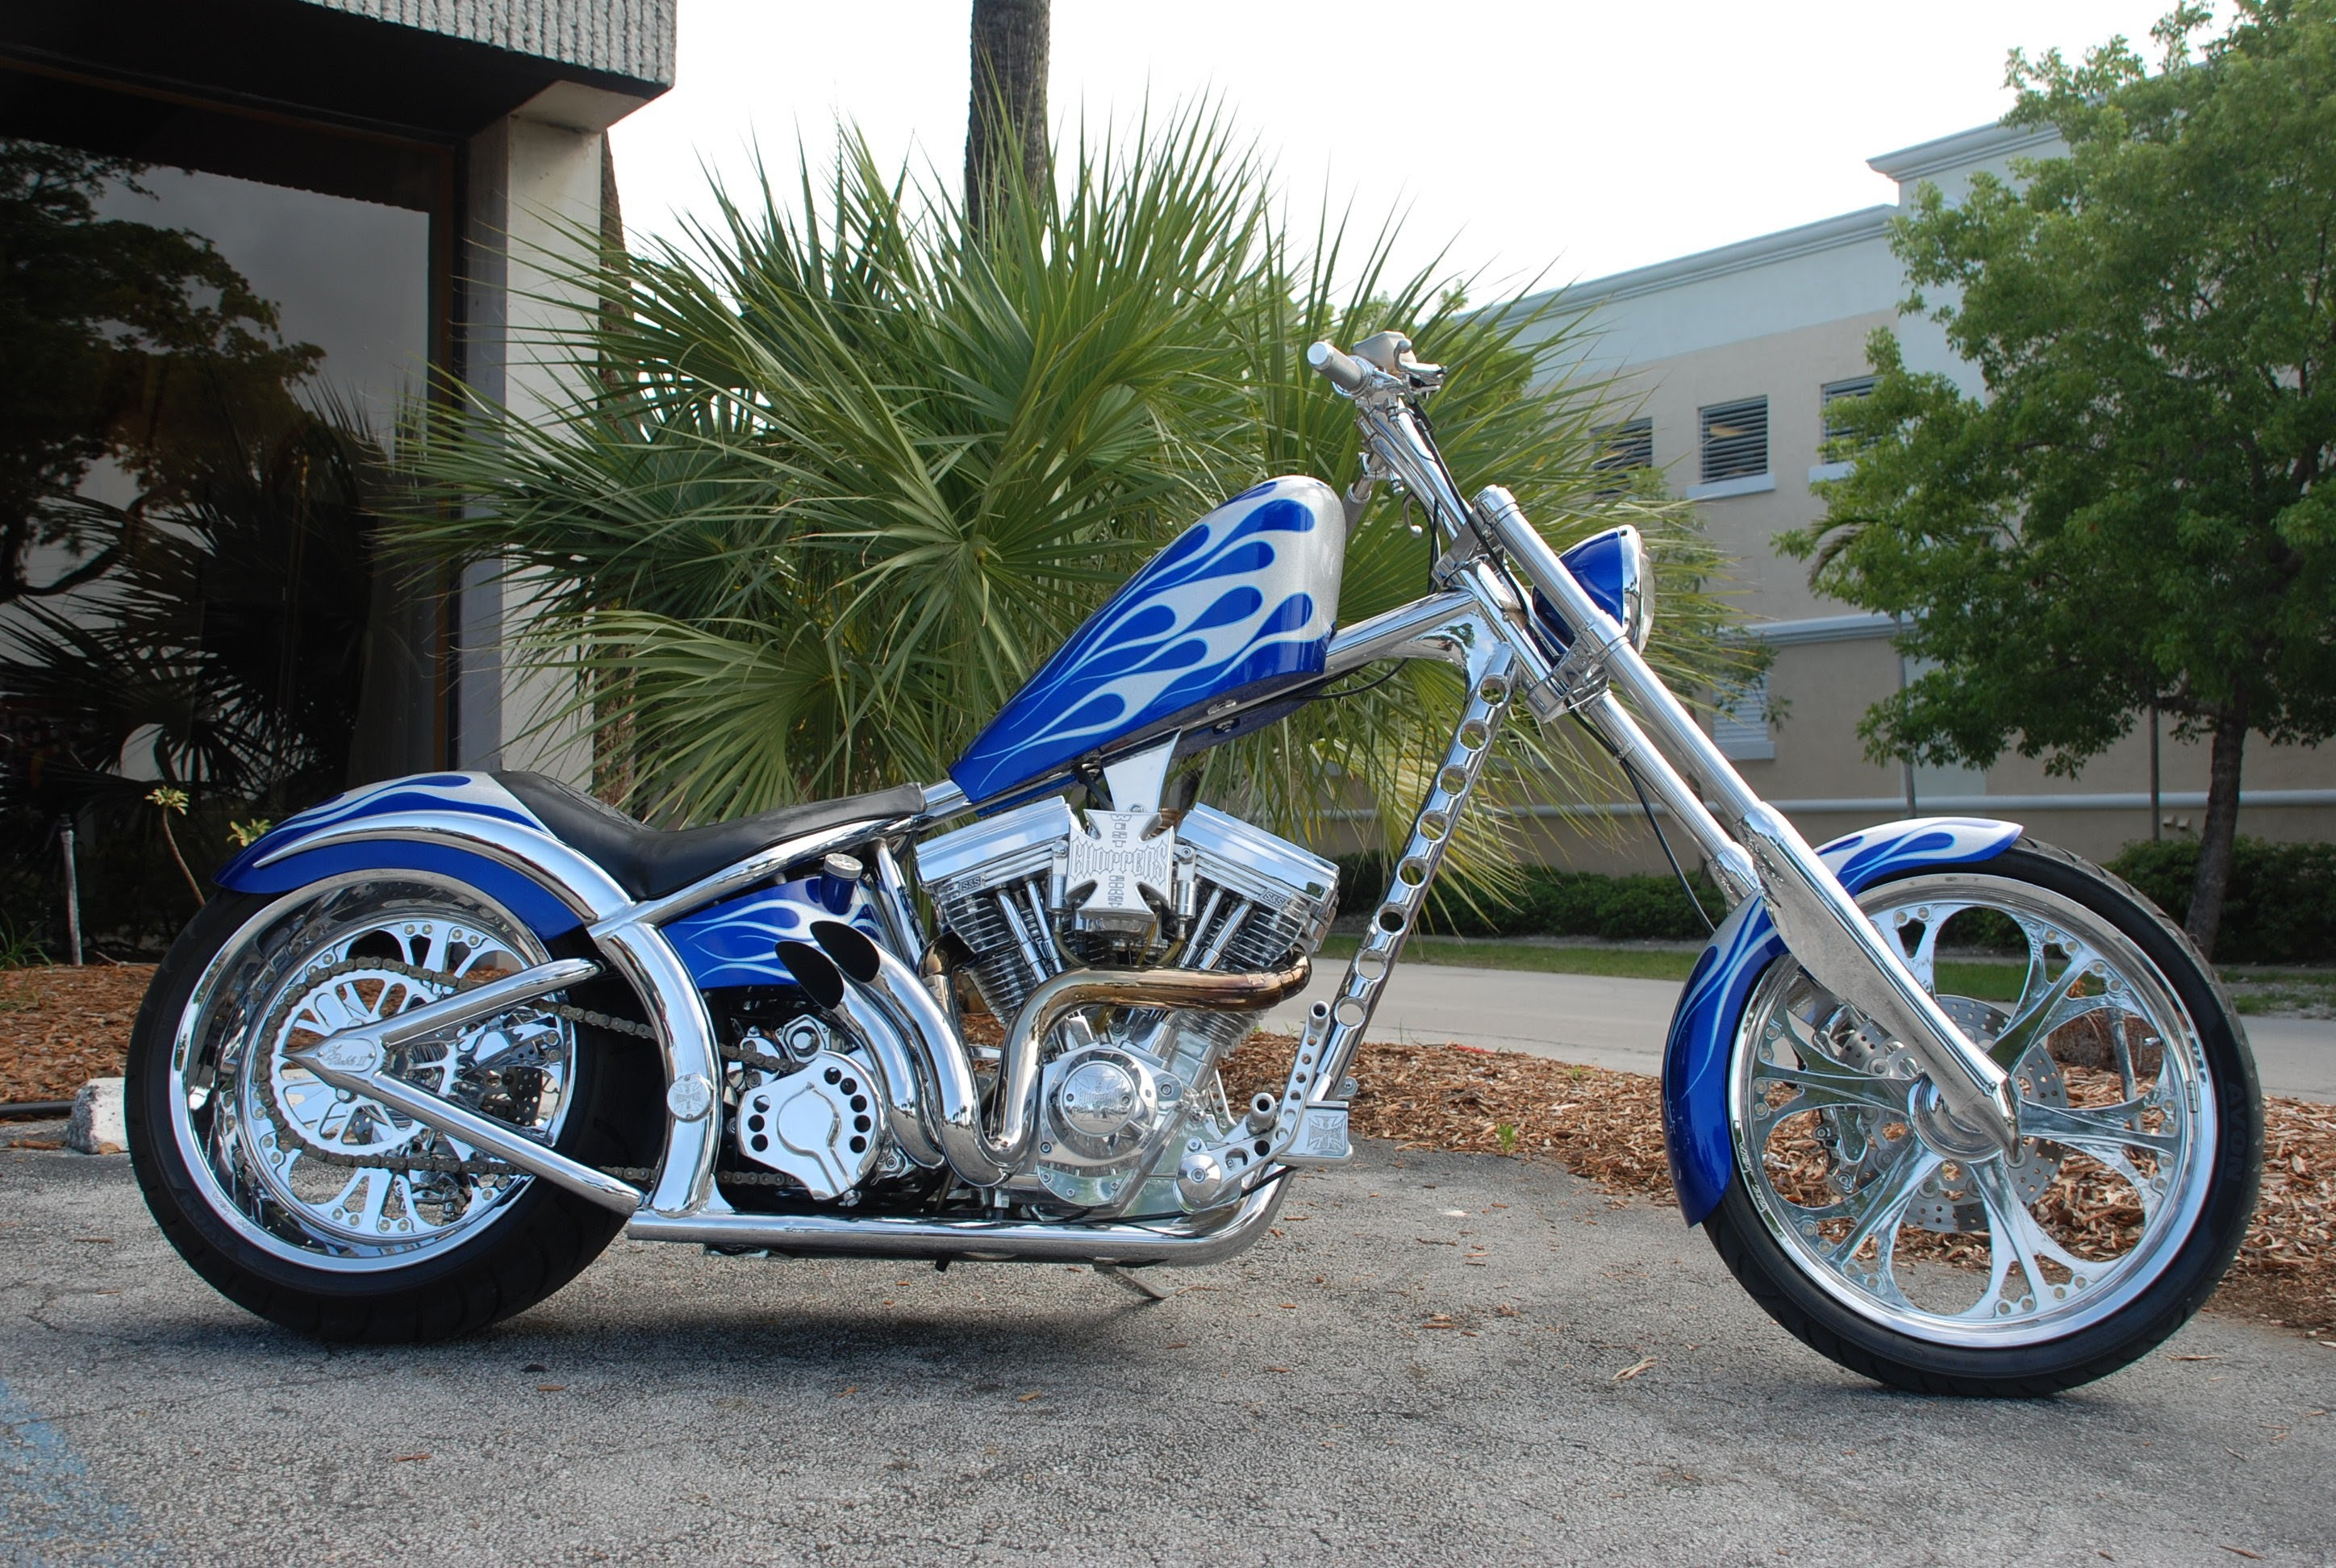 West Coast Customs Cars For Sale >> West Coast Choppers El Diablo 2 Is Sure to Take Your Breath Away! - Legendary Motorcycles